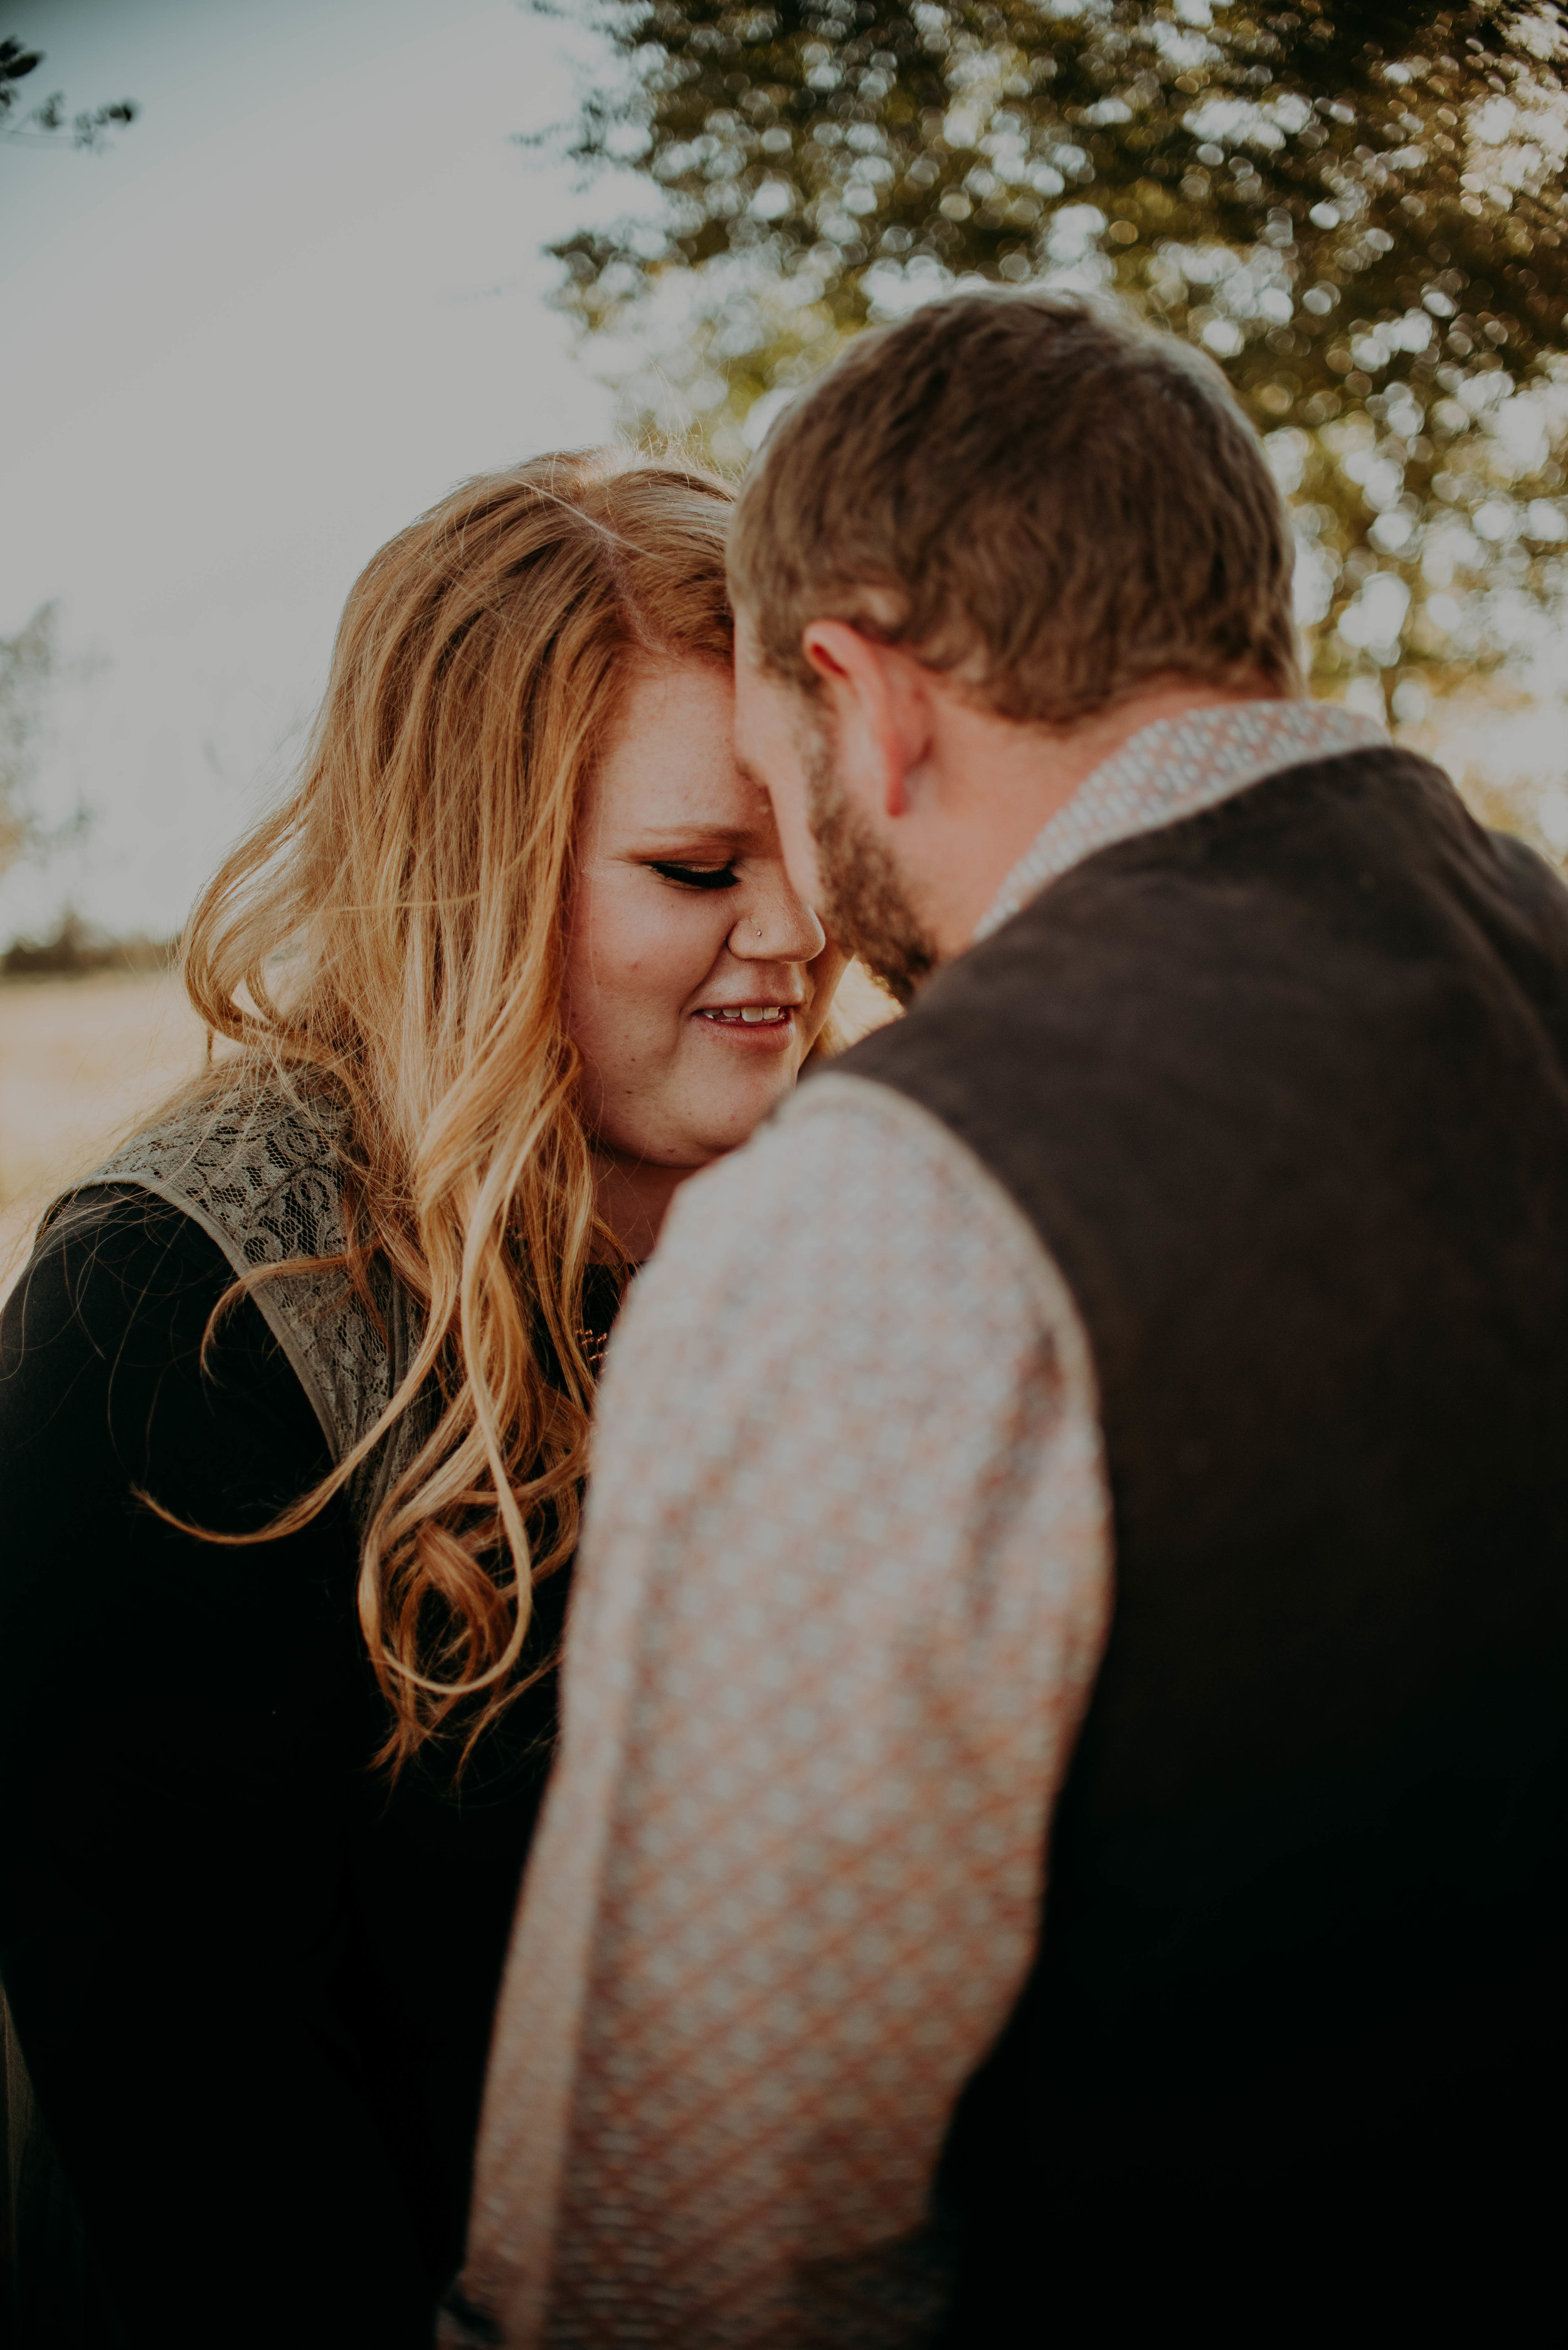 Miss. Miller's Photography | Colorado Engagement Photographer | Country Engagement Photos | Cowboy Engagement Photos | Western Engagement Photos | Engagement Photos | Fall Engagement Photos | Western Outfits for Engagement Photos | Colorado Wedding Photographer